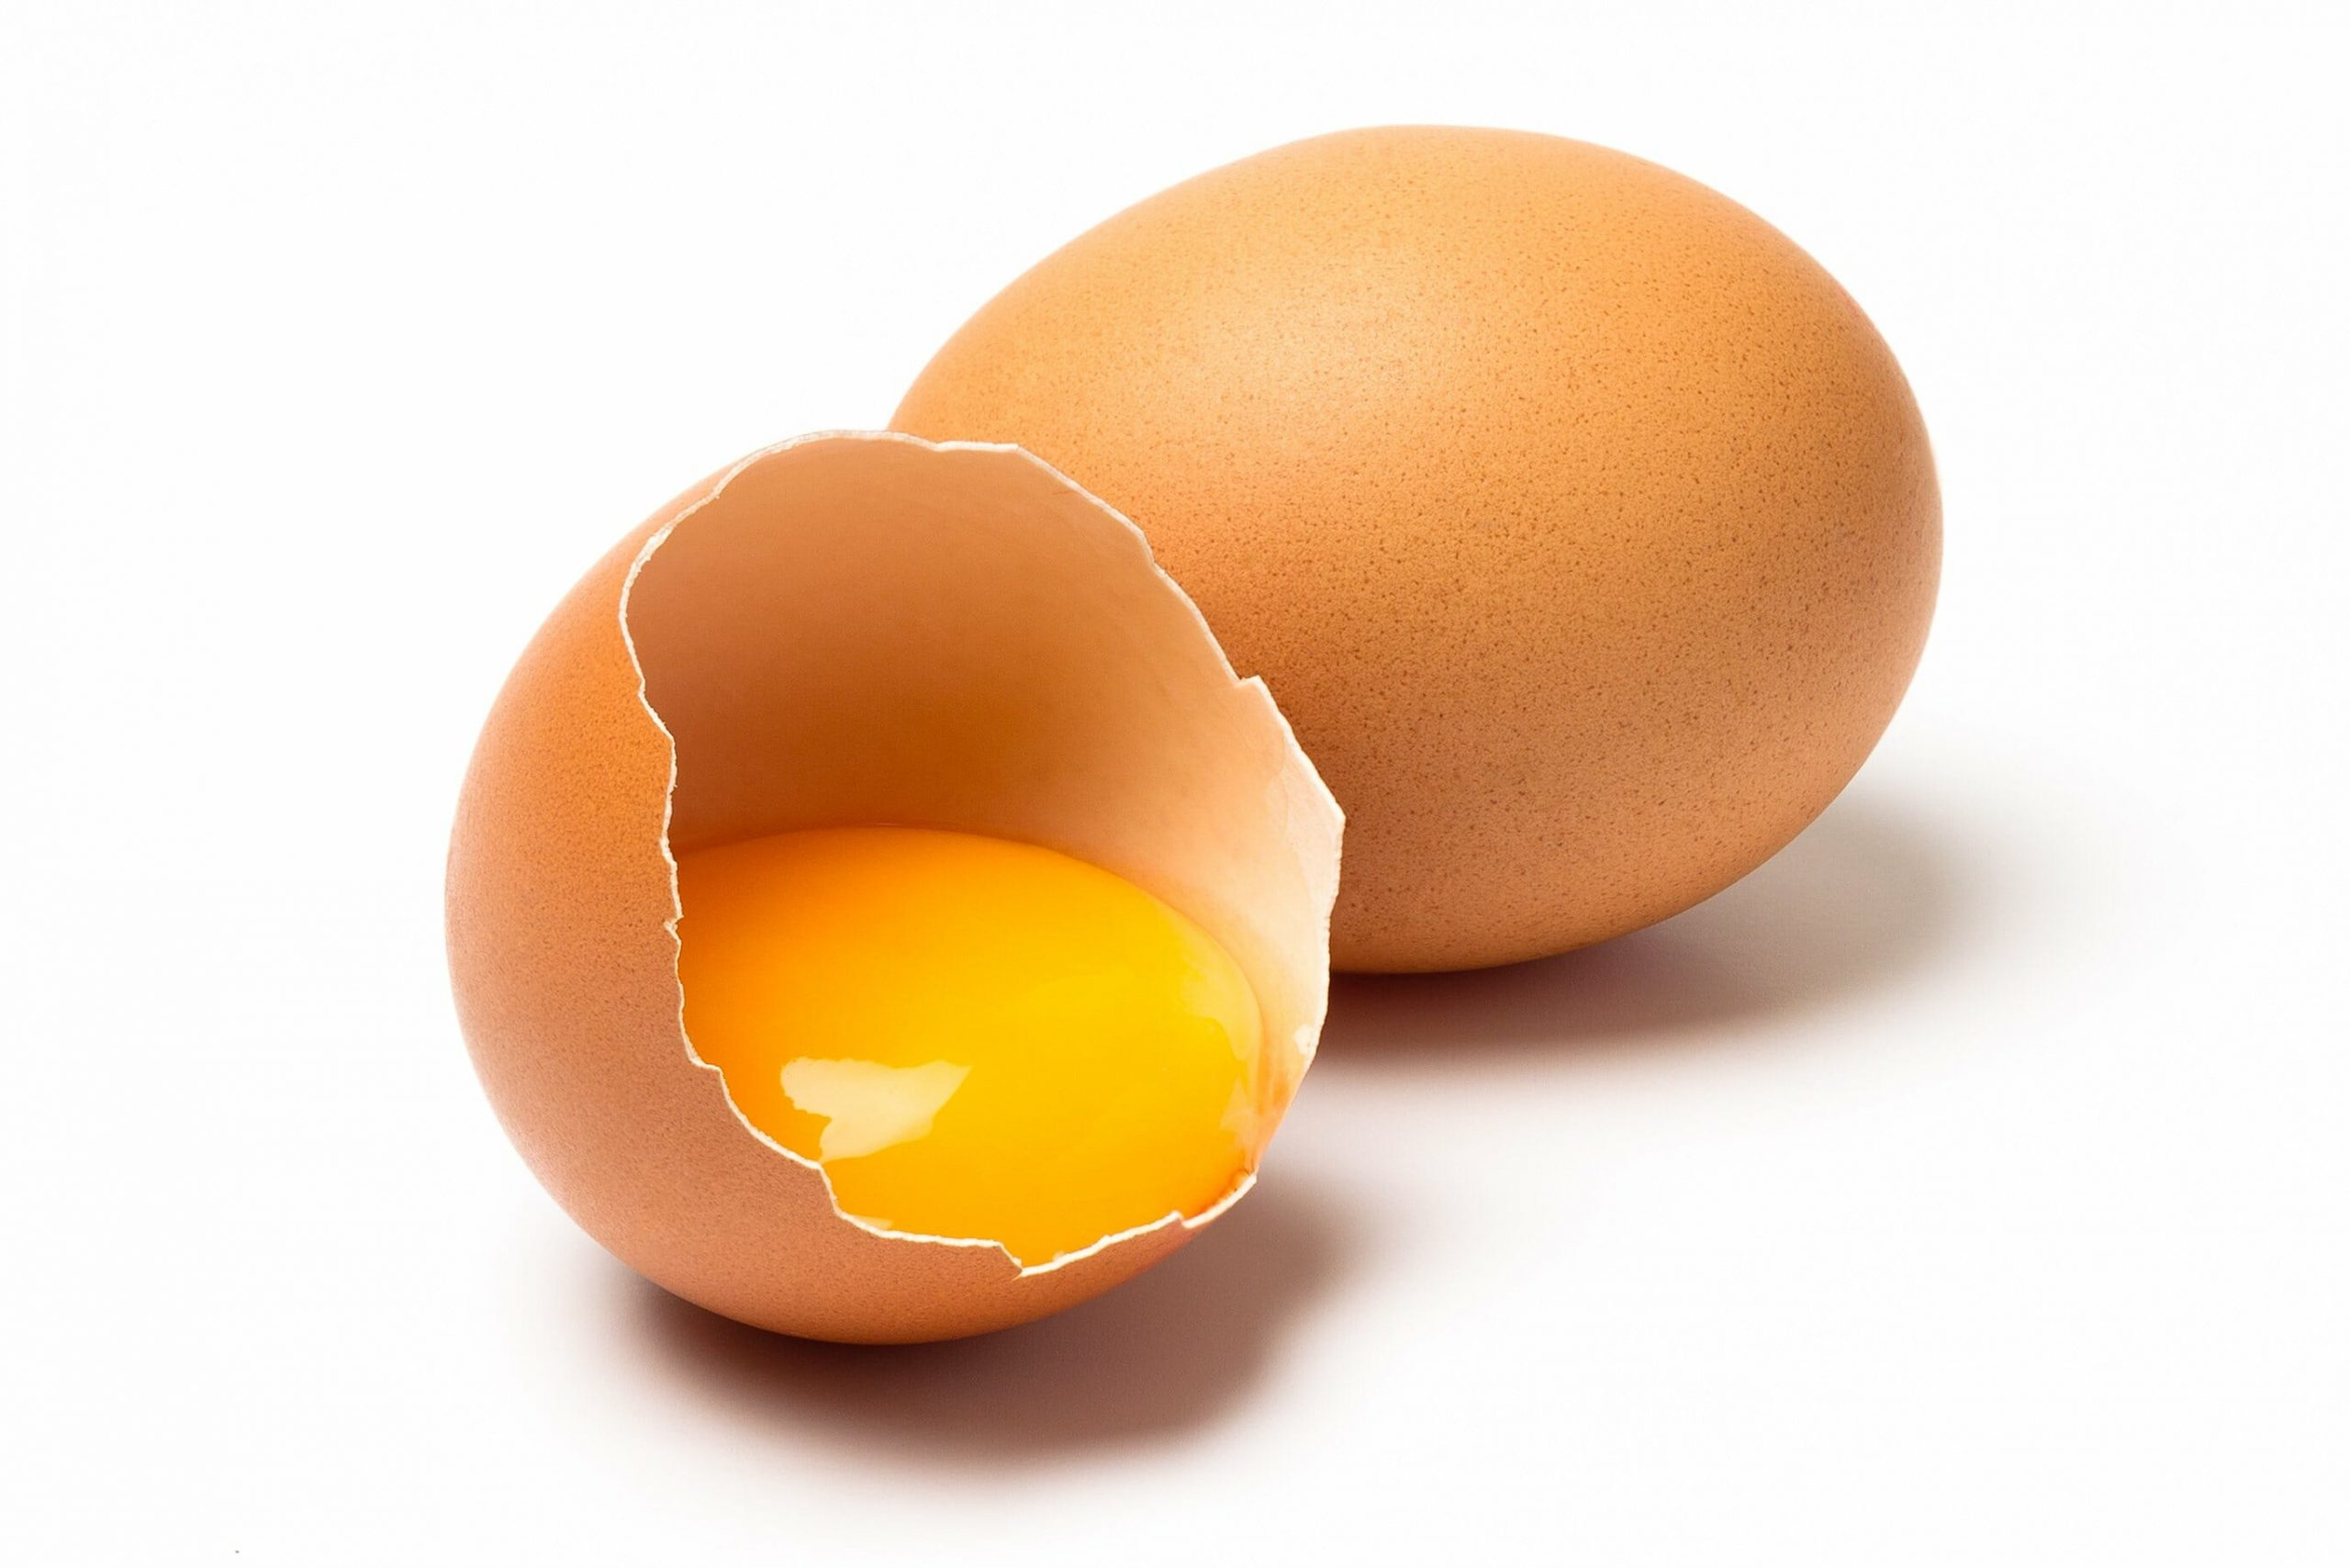 8 Health Benefits of Egg Yolks